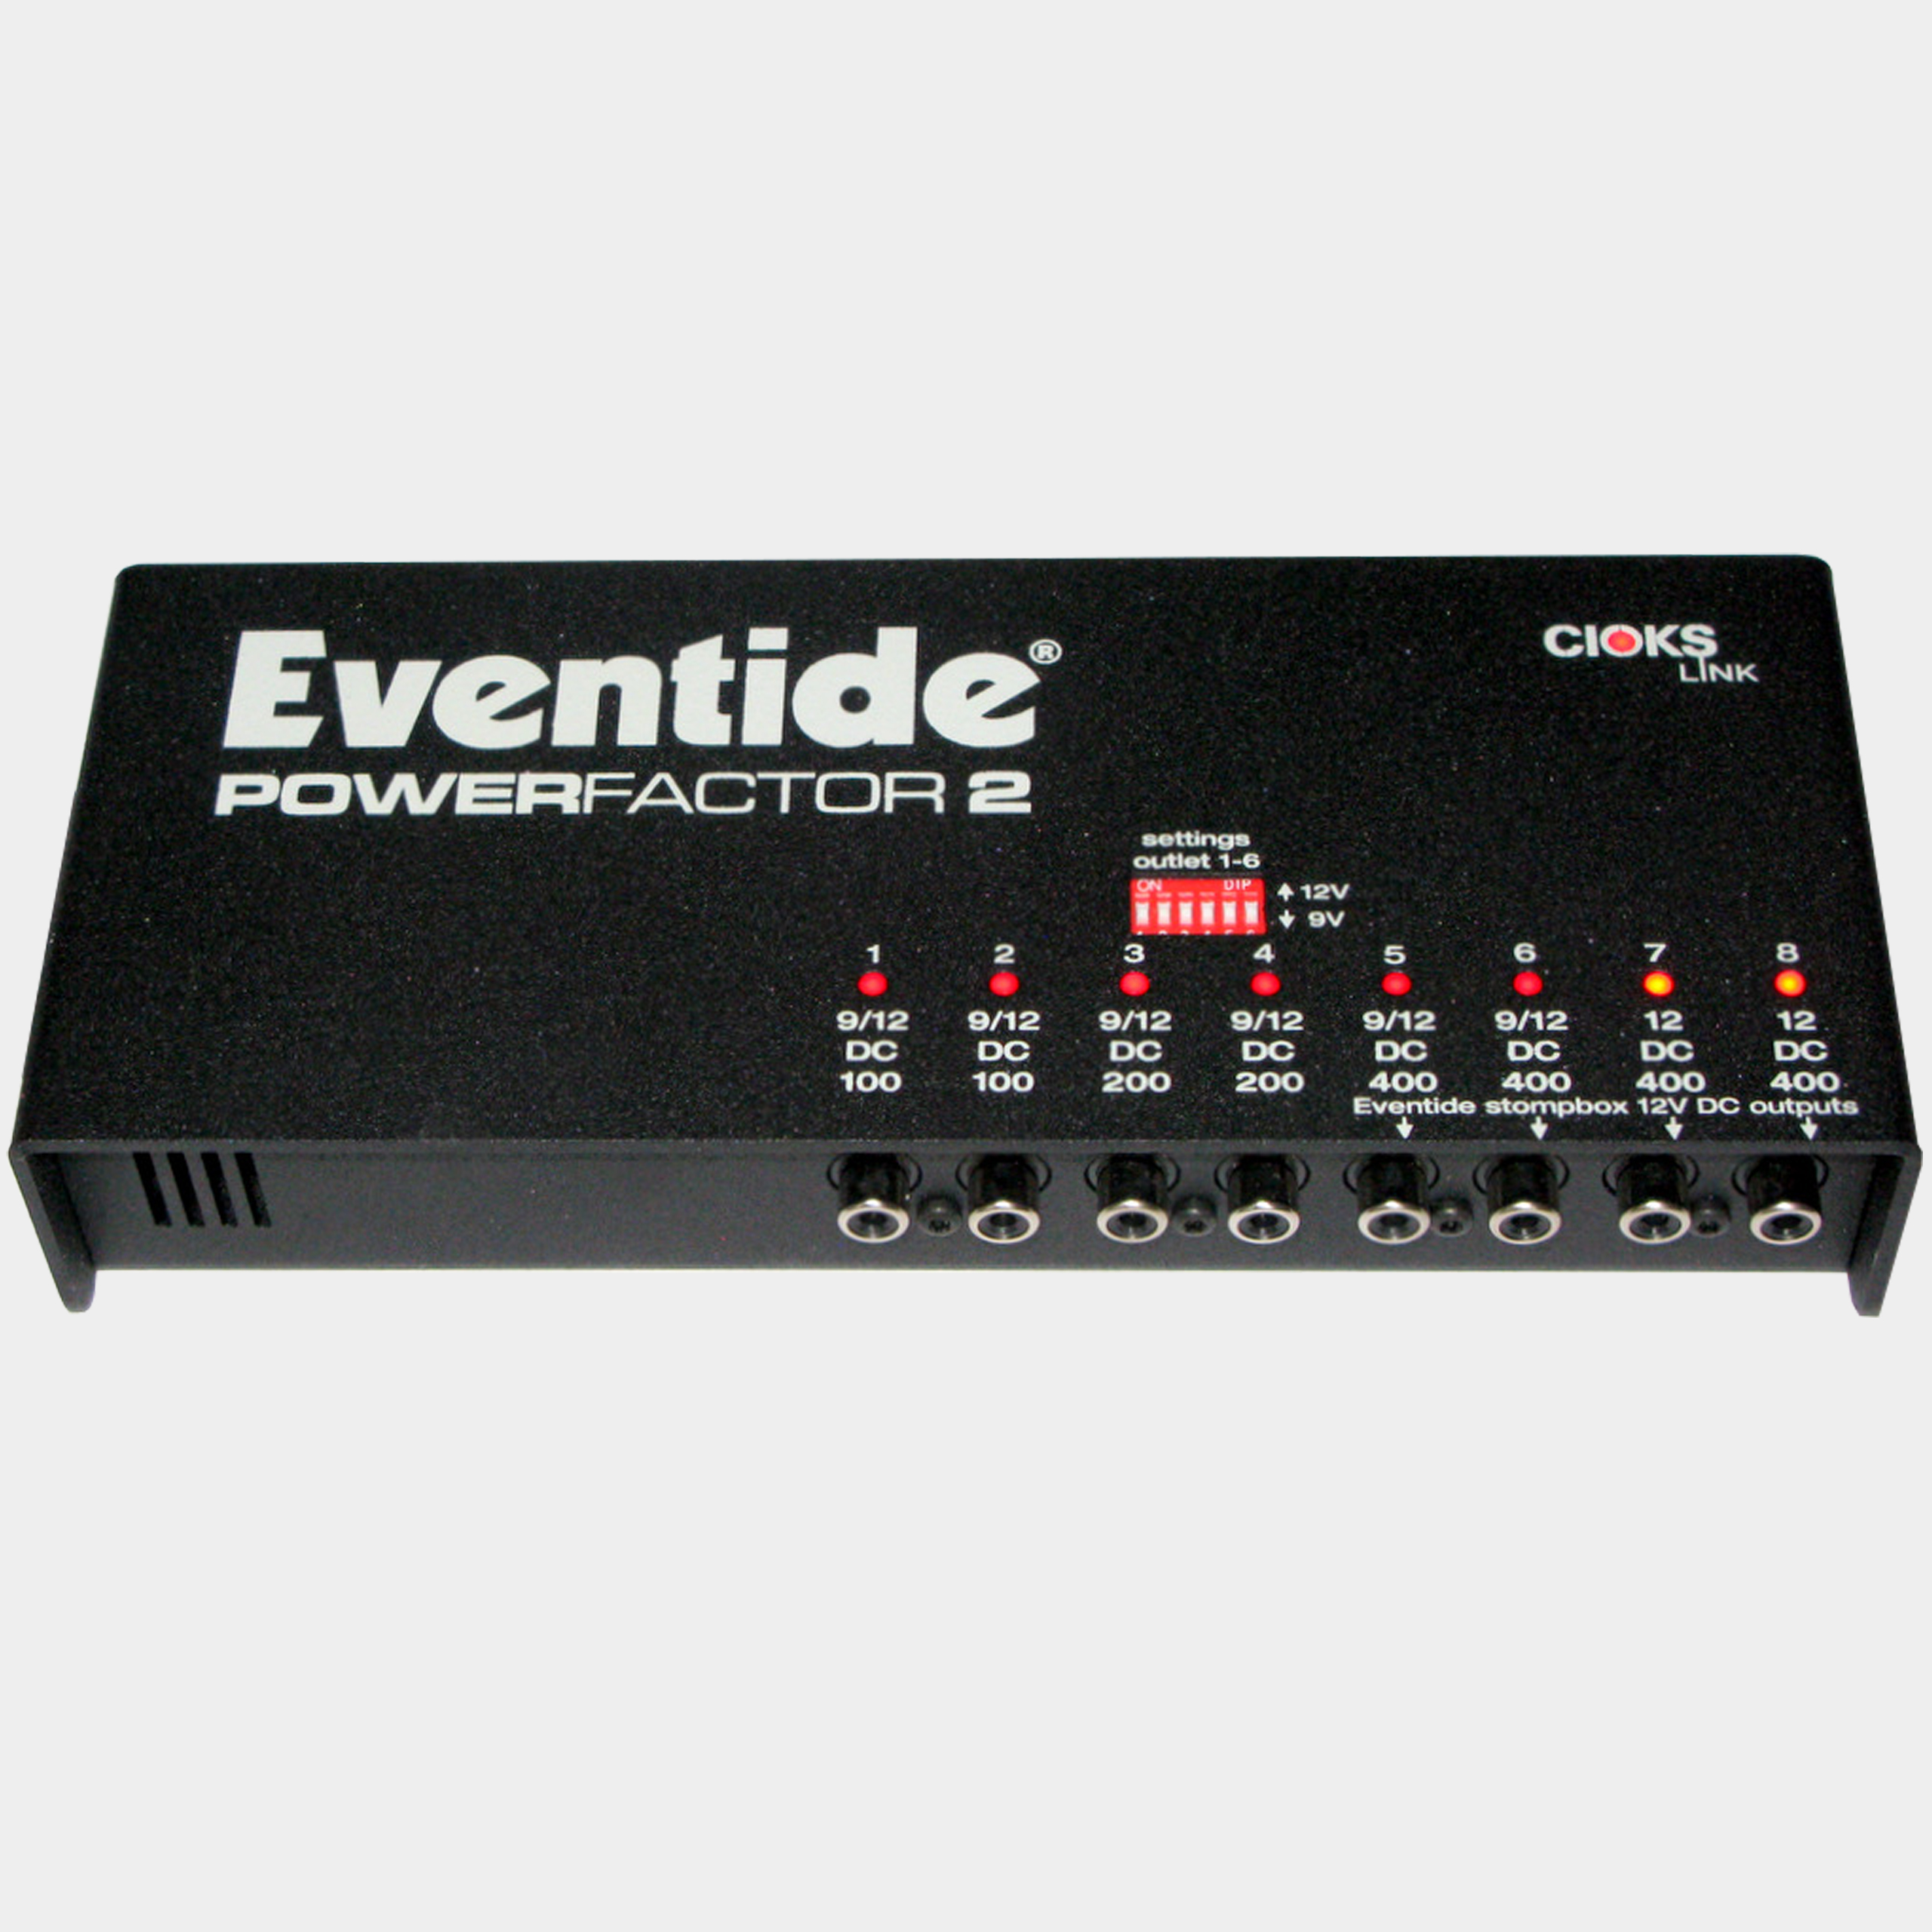 CIOKS Eventide Power Factor 2